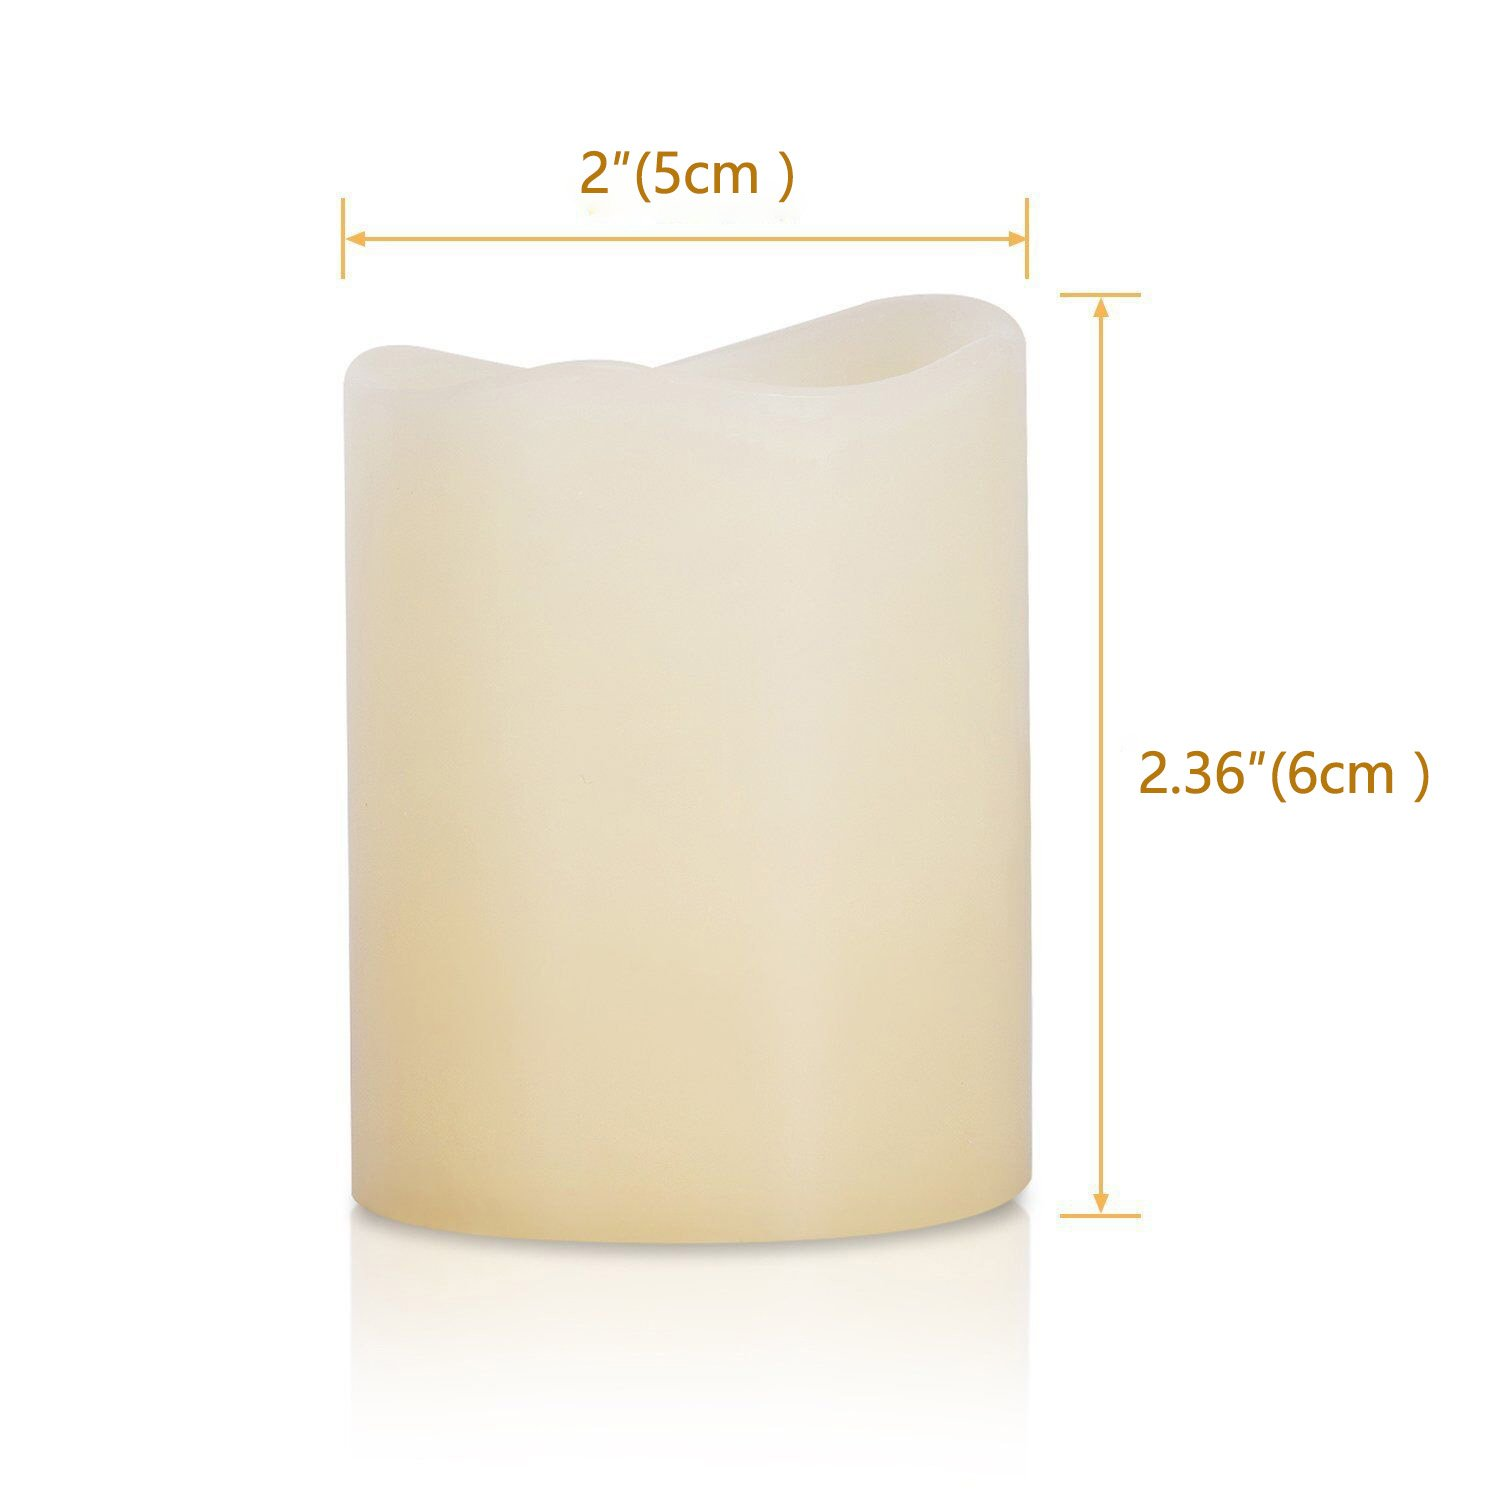 Kohree Flameless Candles Light LED Candles with Built-in Daily-Cycle Timer, Outdoor Battery Operated Led Real Wax Candles Light, Pillar Candle, Warm White Pack of 12 by Kohree (Image #8)